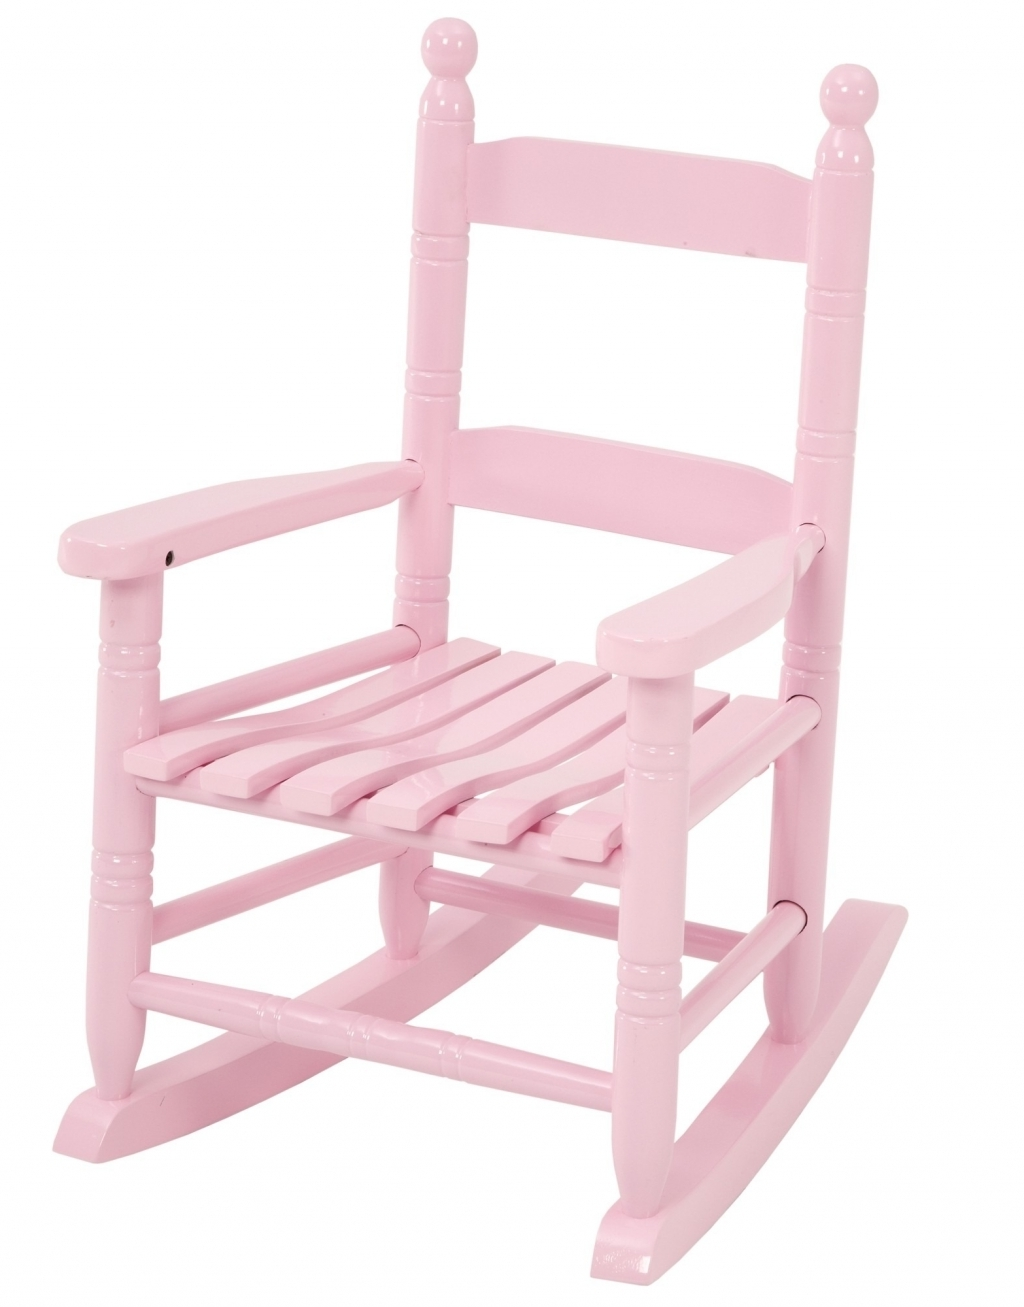 Rocking Chairs For Toddlers With Regard To Well Liked Furniture: Childrens Rocking Chairs Luxury Jack Post Pink Childrens (View 16 of 20)